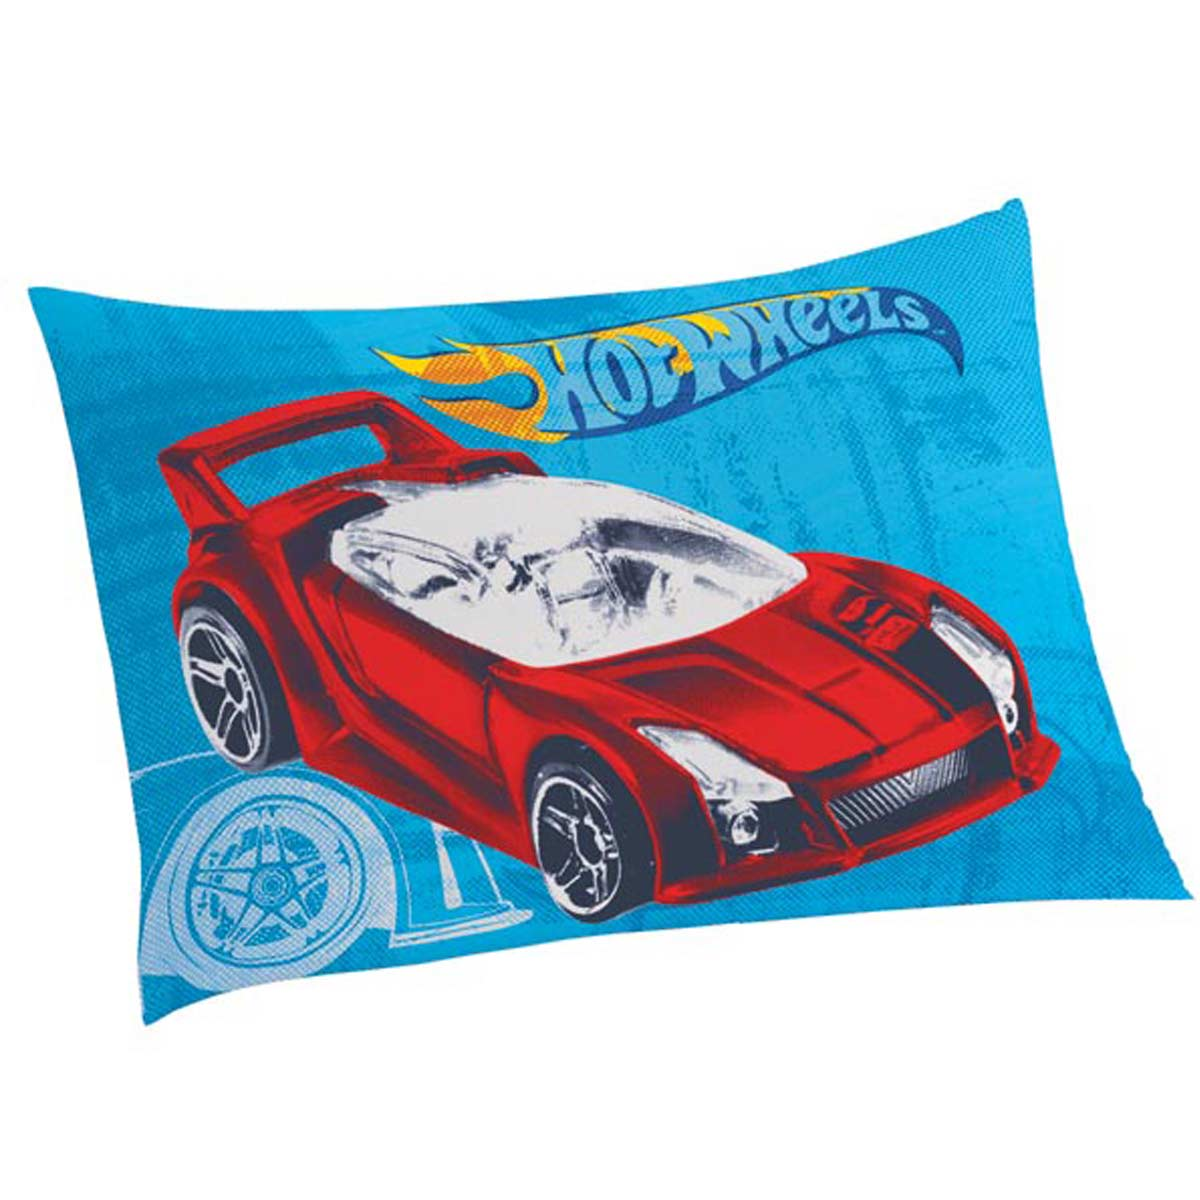 Fronha Avulsa Hot Wheels 50cm x 70cm  Lepper